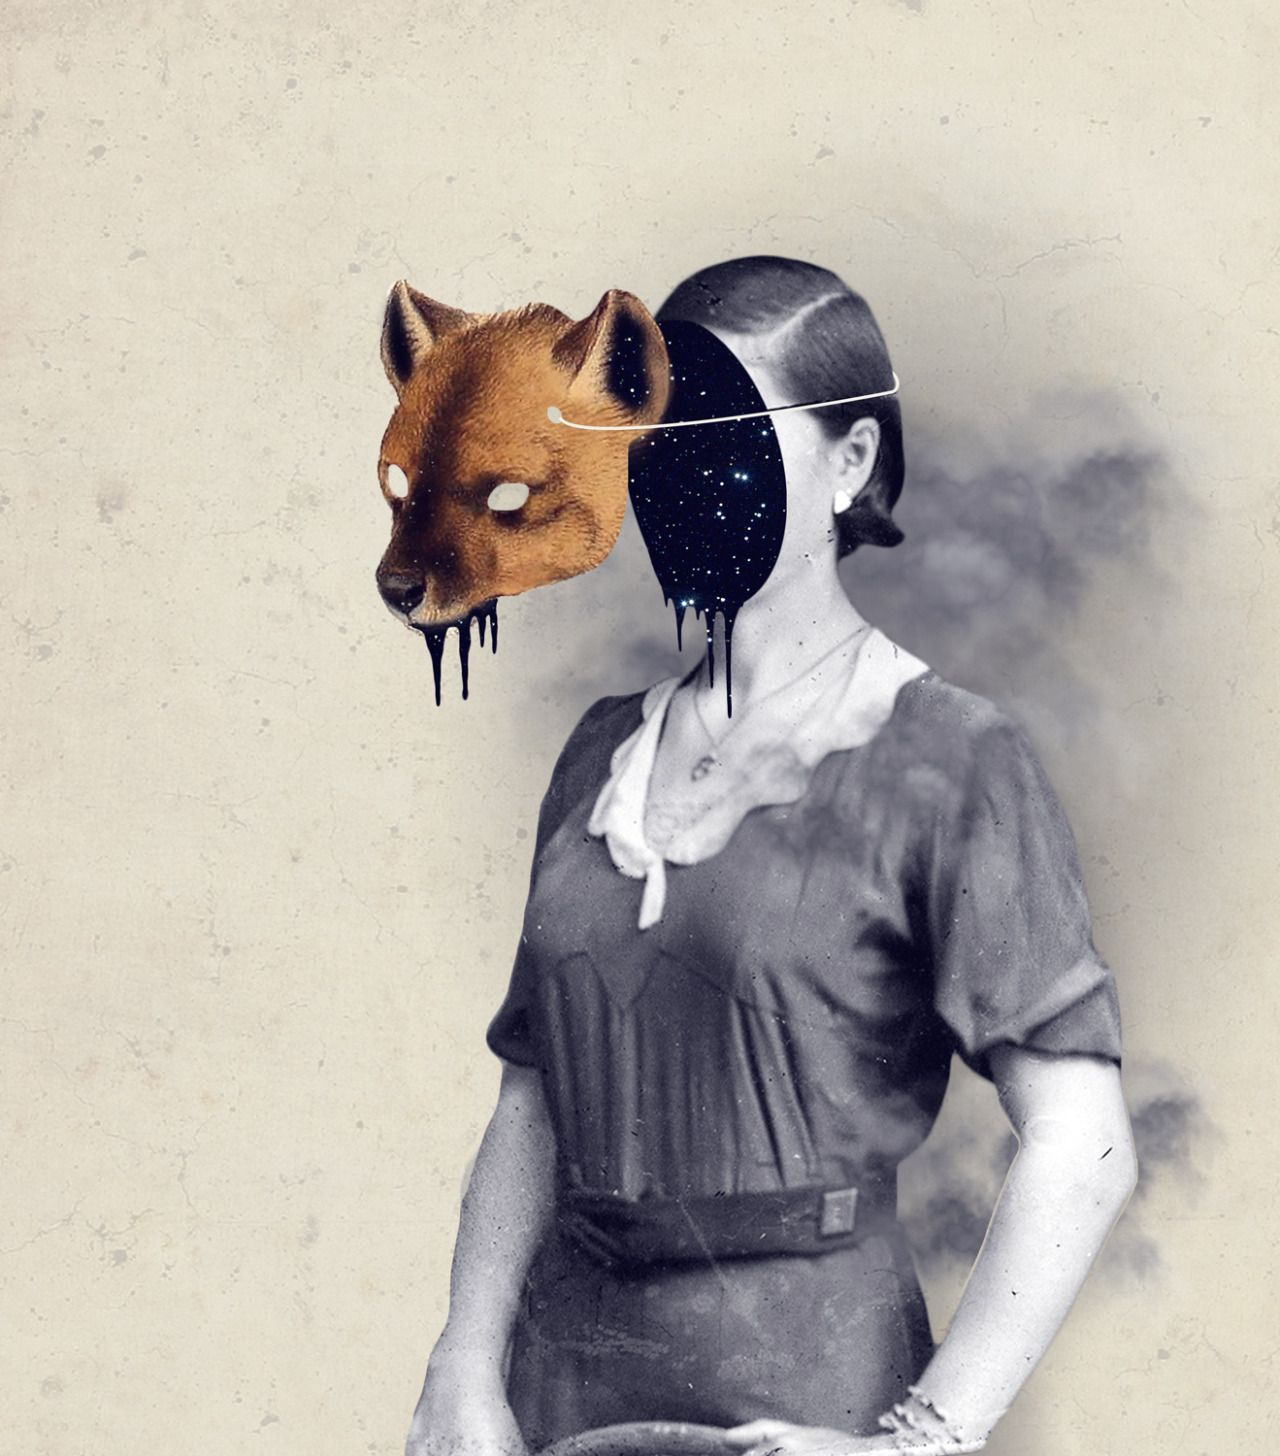 The Daily Muse: Julia Geiser, Digital Collage Artist - Curated by Elusive Muse   http://elusivemu.se/julia-geiser/  ©2015, All Rights Reserved, Julia Geiser